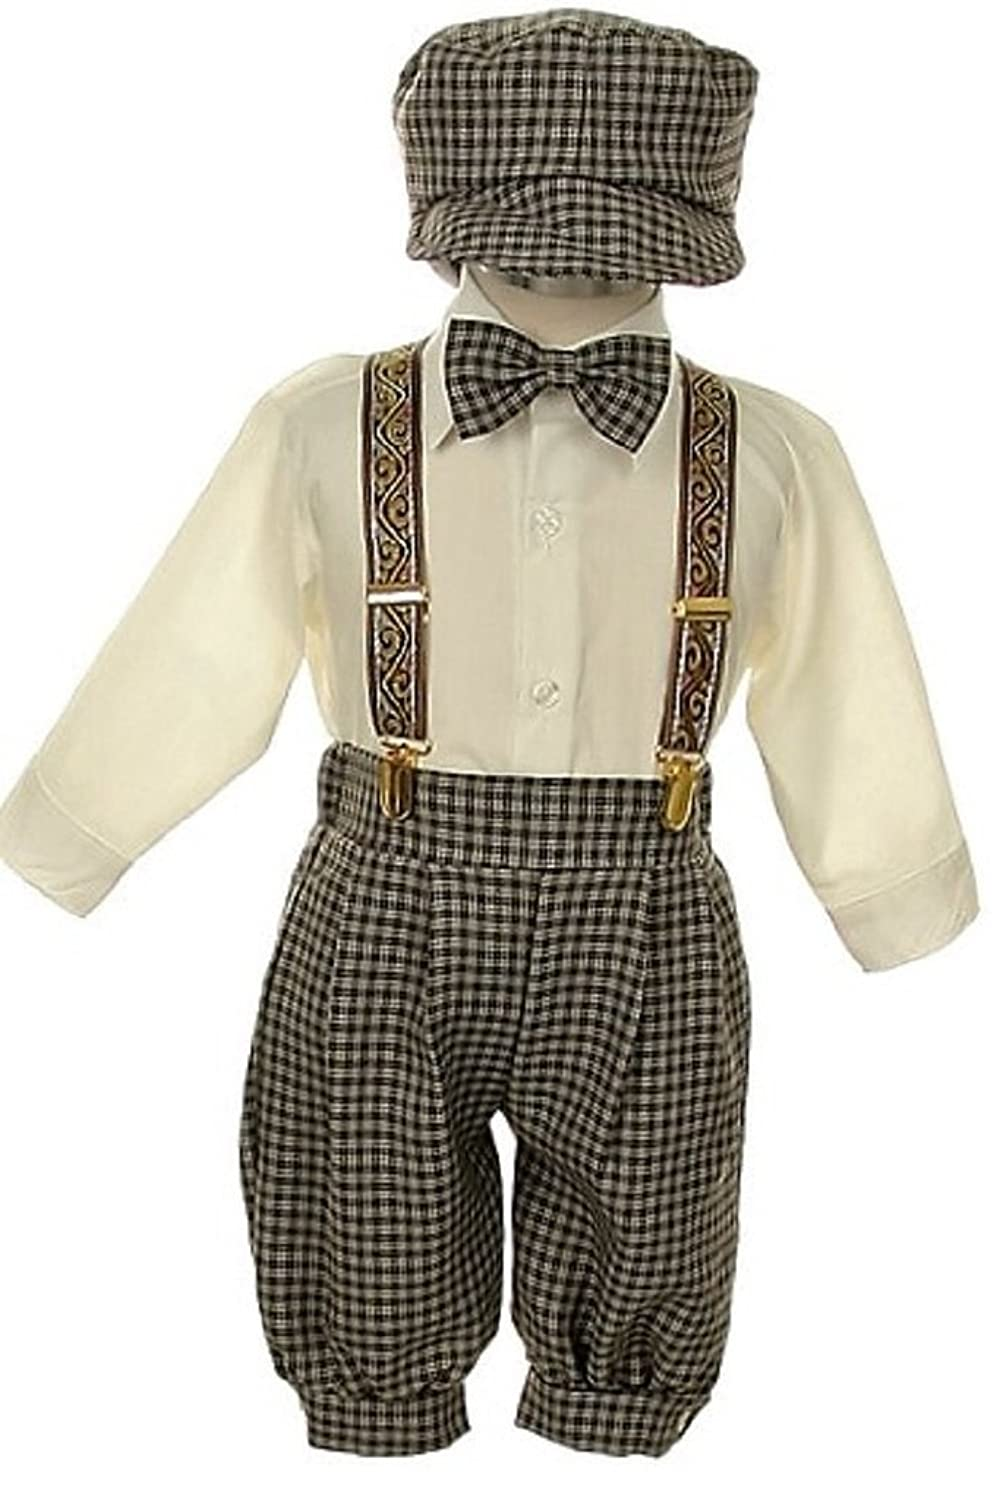 Victorian Kids Costumes & Shoes- Girls, Boys, Baby, Toddler iGirlDress Vintage Dress Suit-Tuxedo Knickers Outfit Set Baby Boys & Toddler $35.00 AT vintagedancer.com